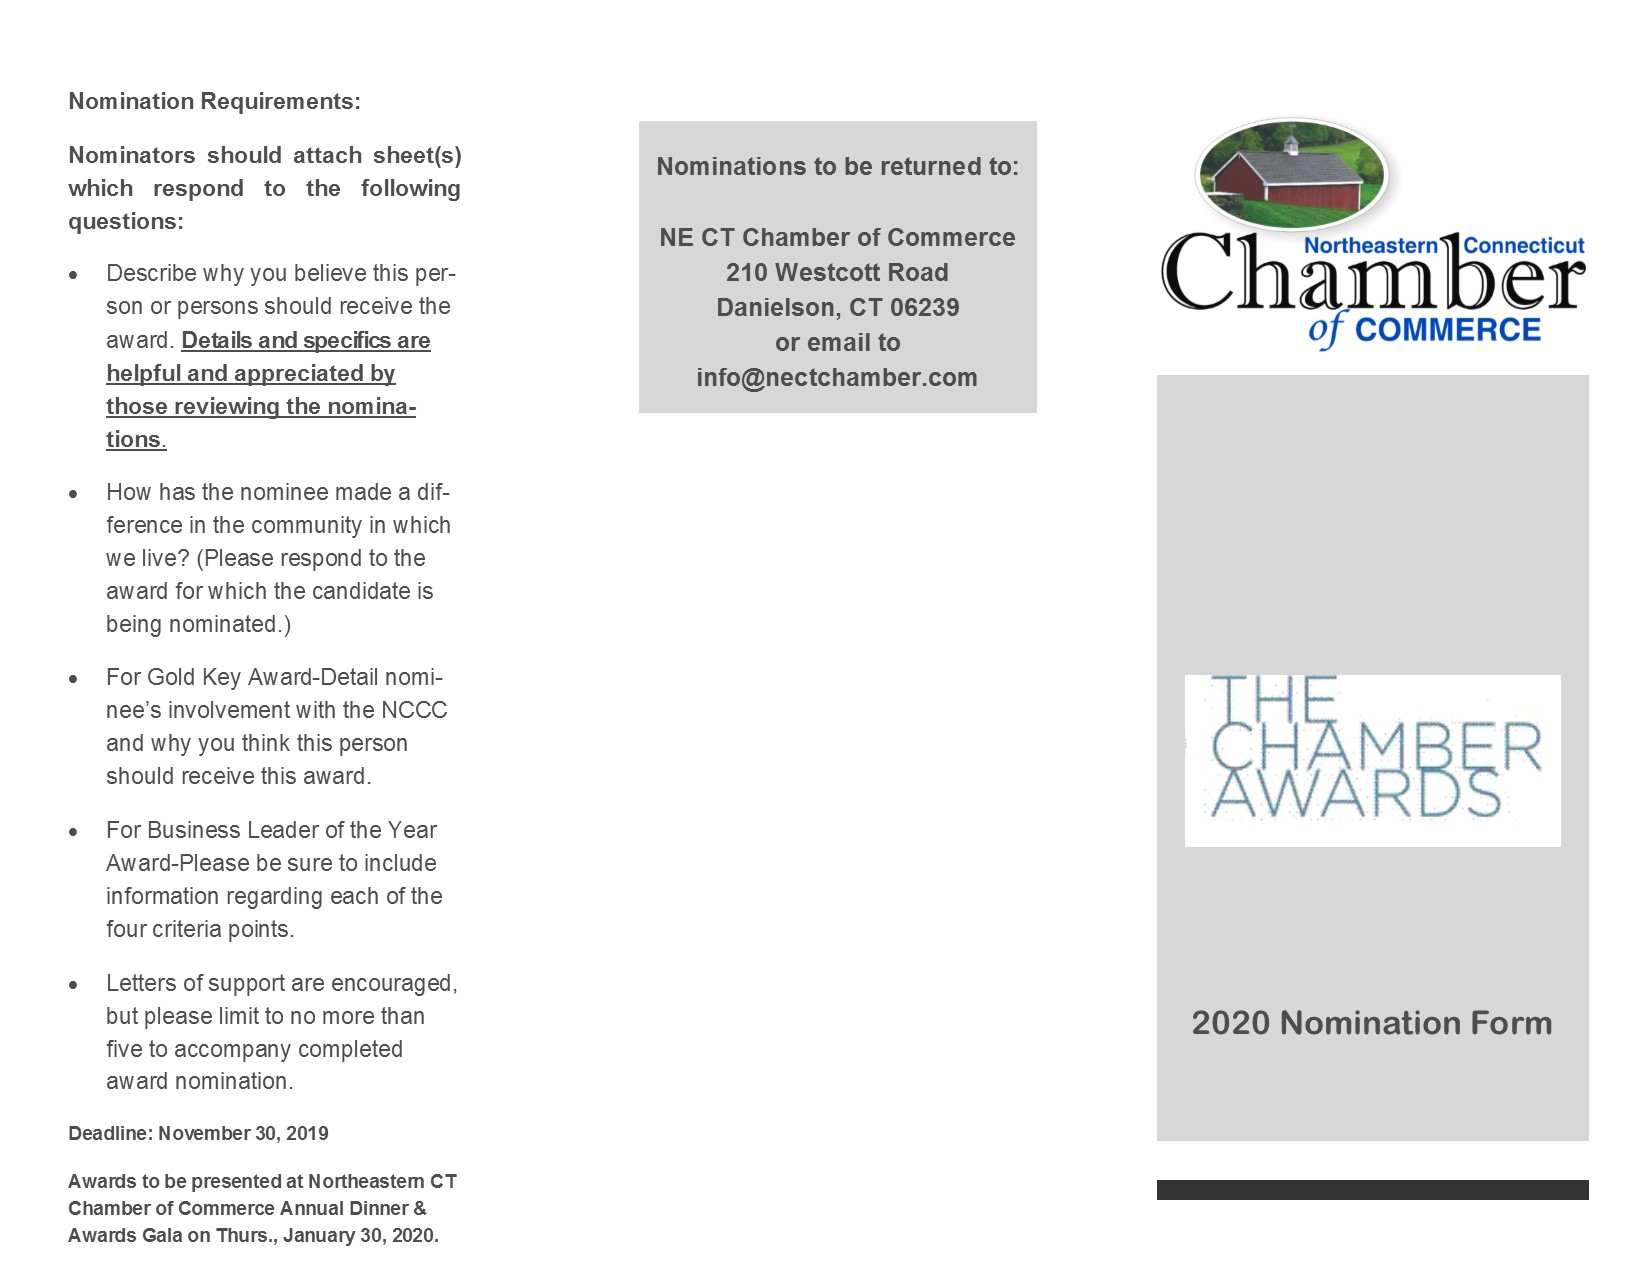 Chamber Award Nominations - Download a form today to submit a nomination!